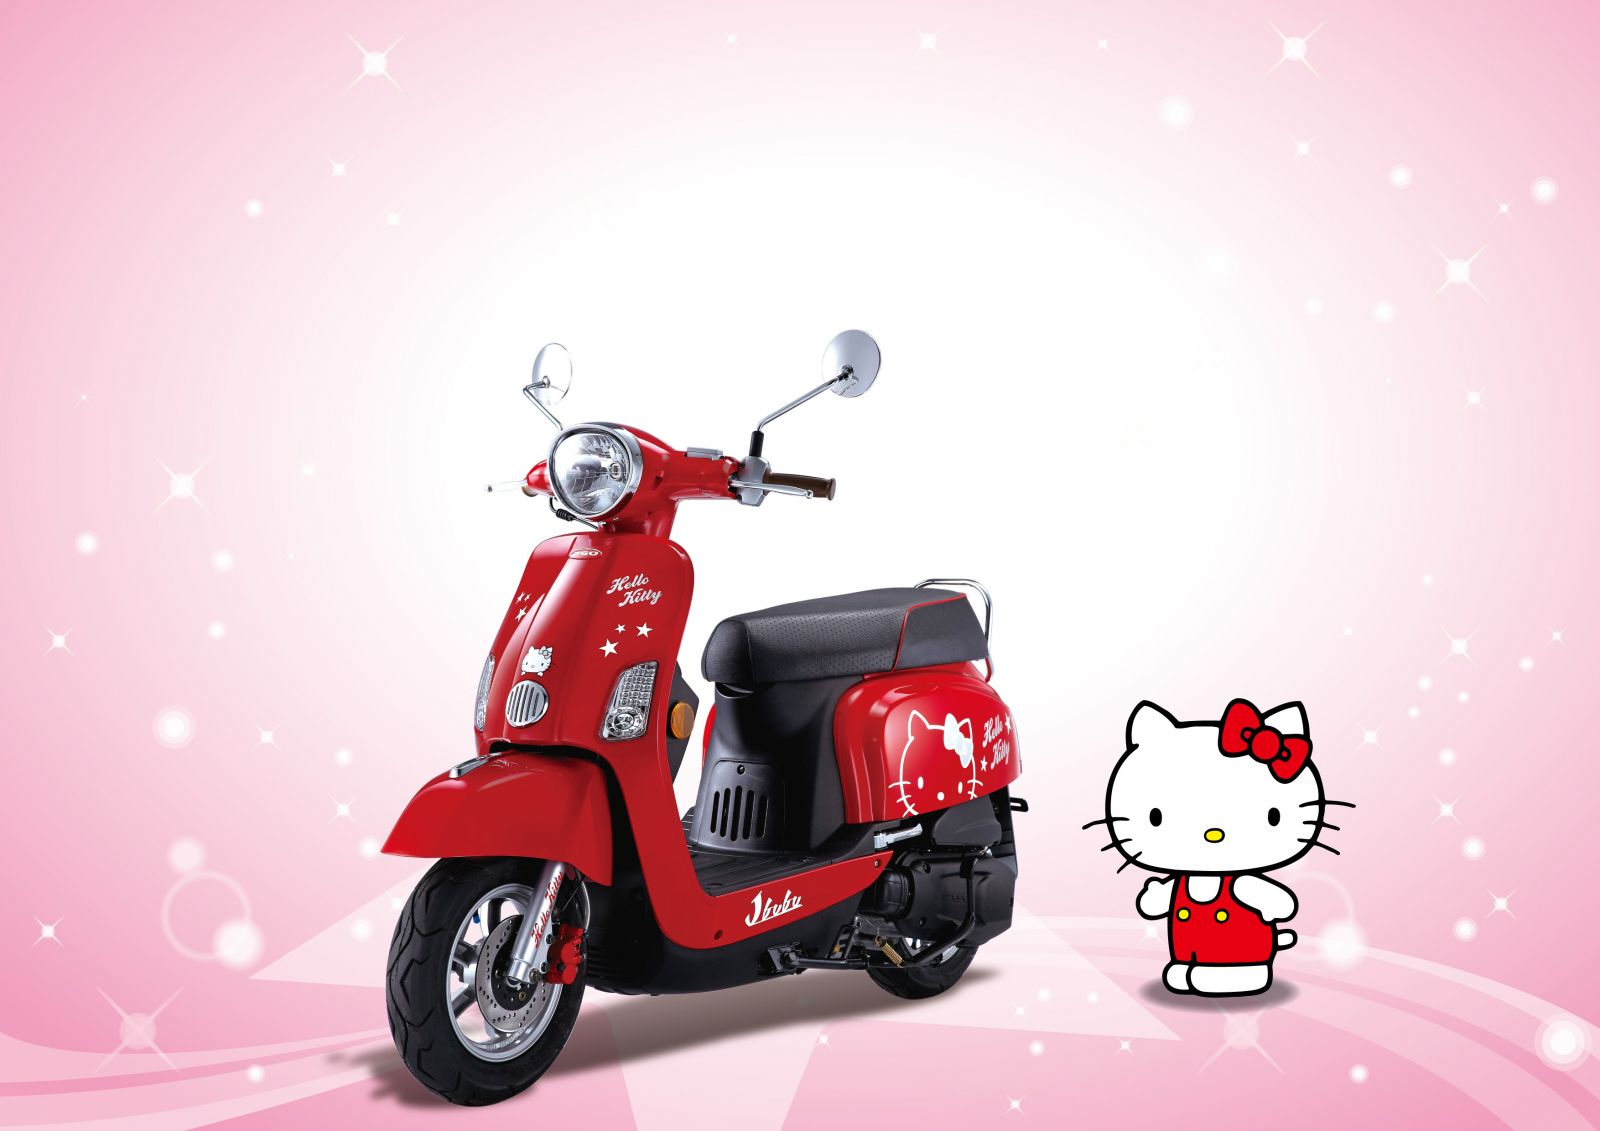 Modif Skotlet Hello Kitty Bikin Motor Tambah Pretty MOTORBLITZ